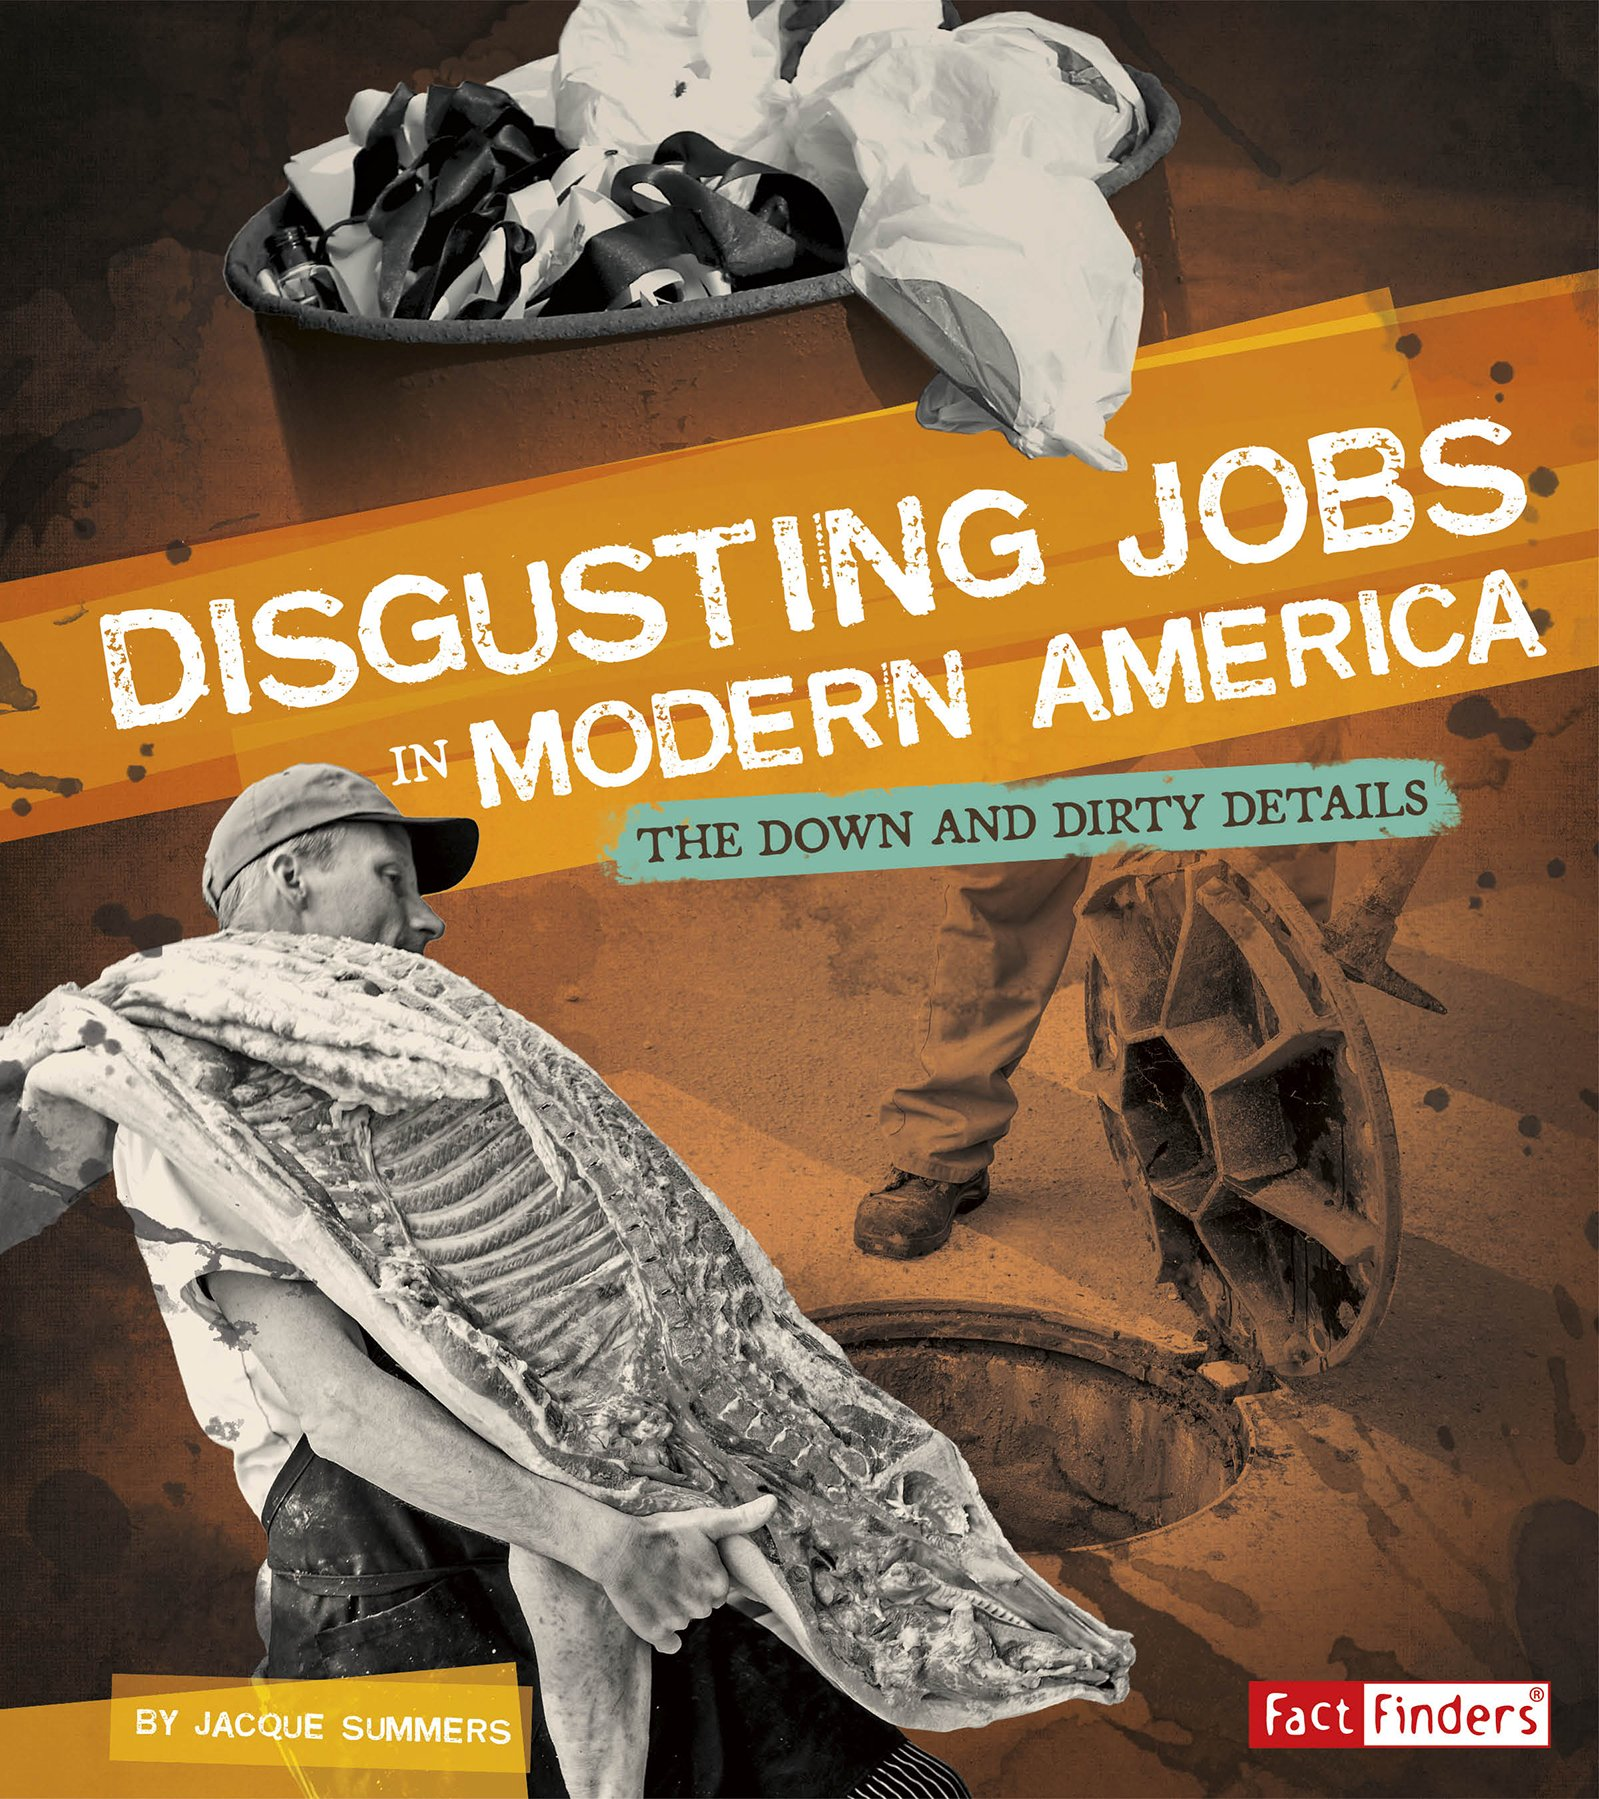 Disgusting Jobs in Modern America: The Down and Dirty Details (Disgusting Jobs in History)